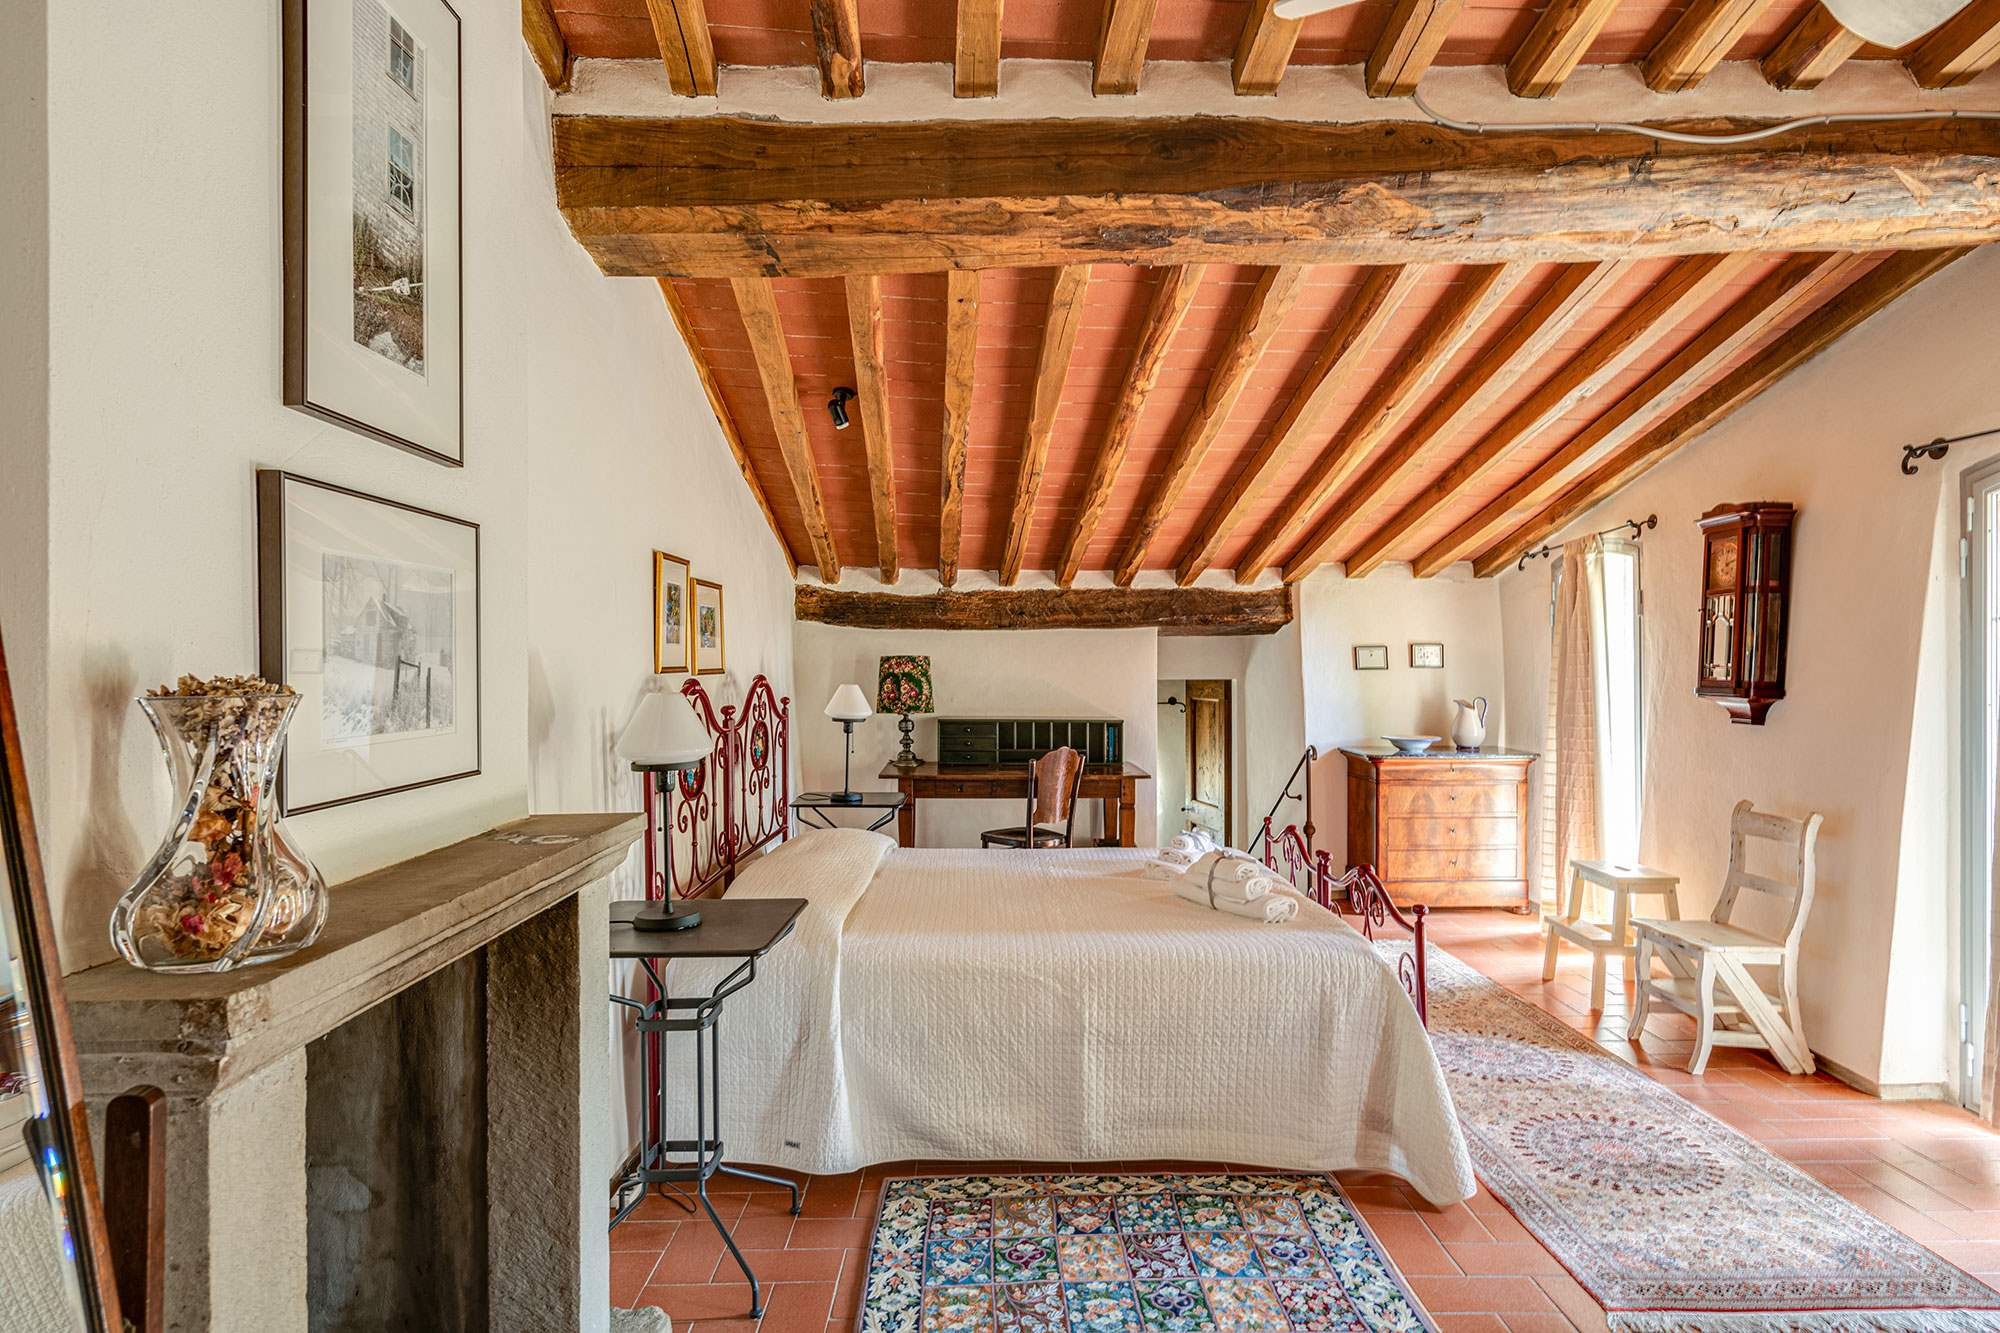 Villa Claudia, 5 Bedroom rate, 5 bedroom villa in Chianti & Countryside, Tuscany Photo #17